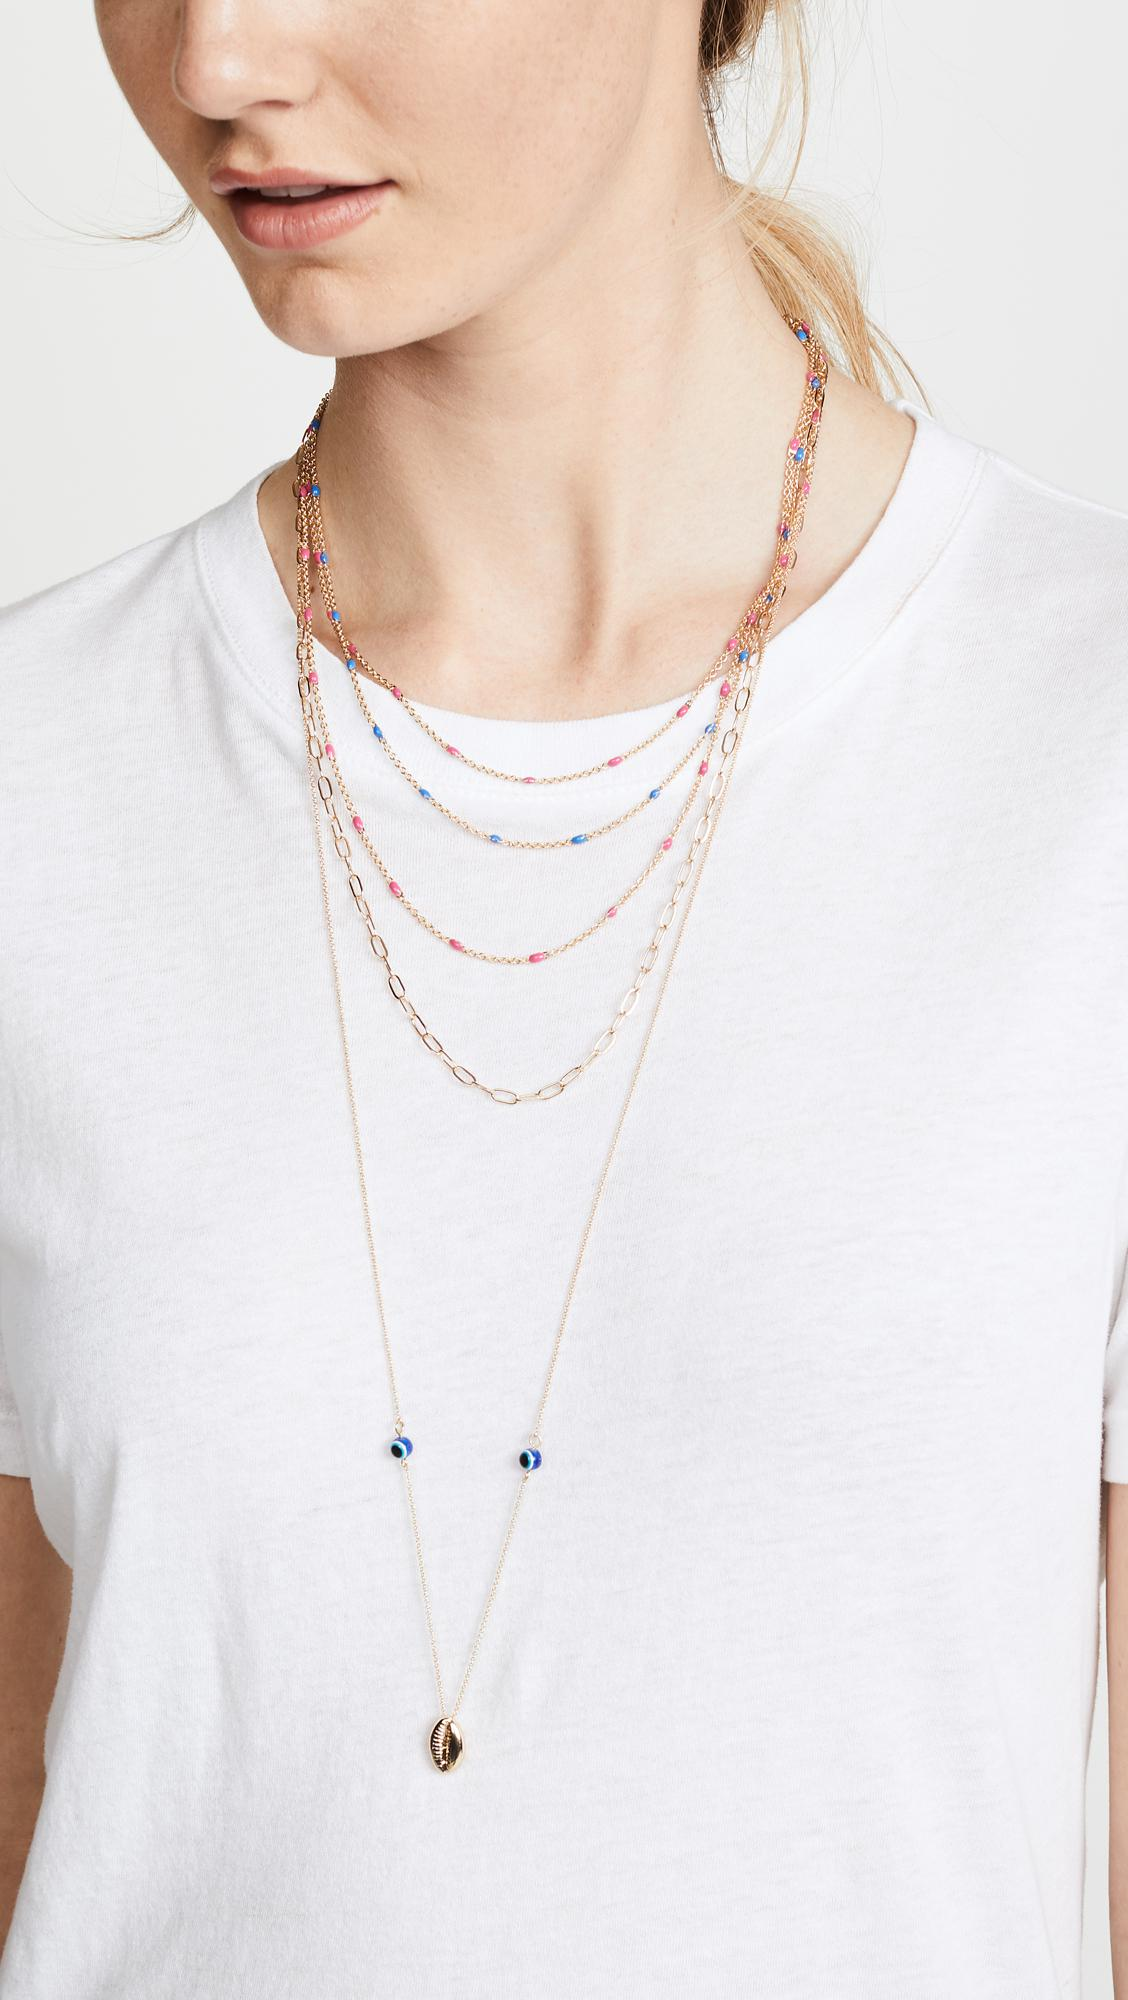 Rebecca Minkoff Beachy Layered Chains Necklace in Gold (Metallic)